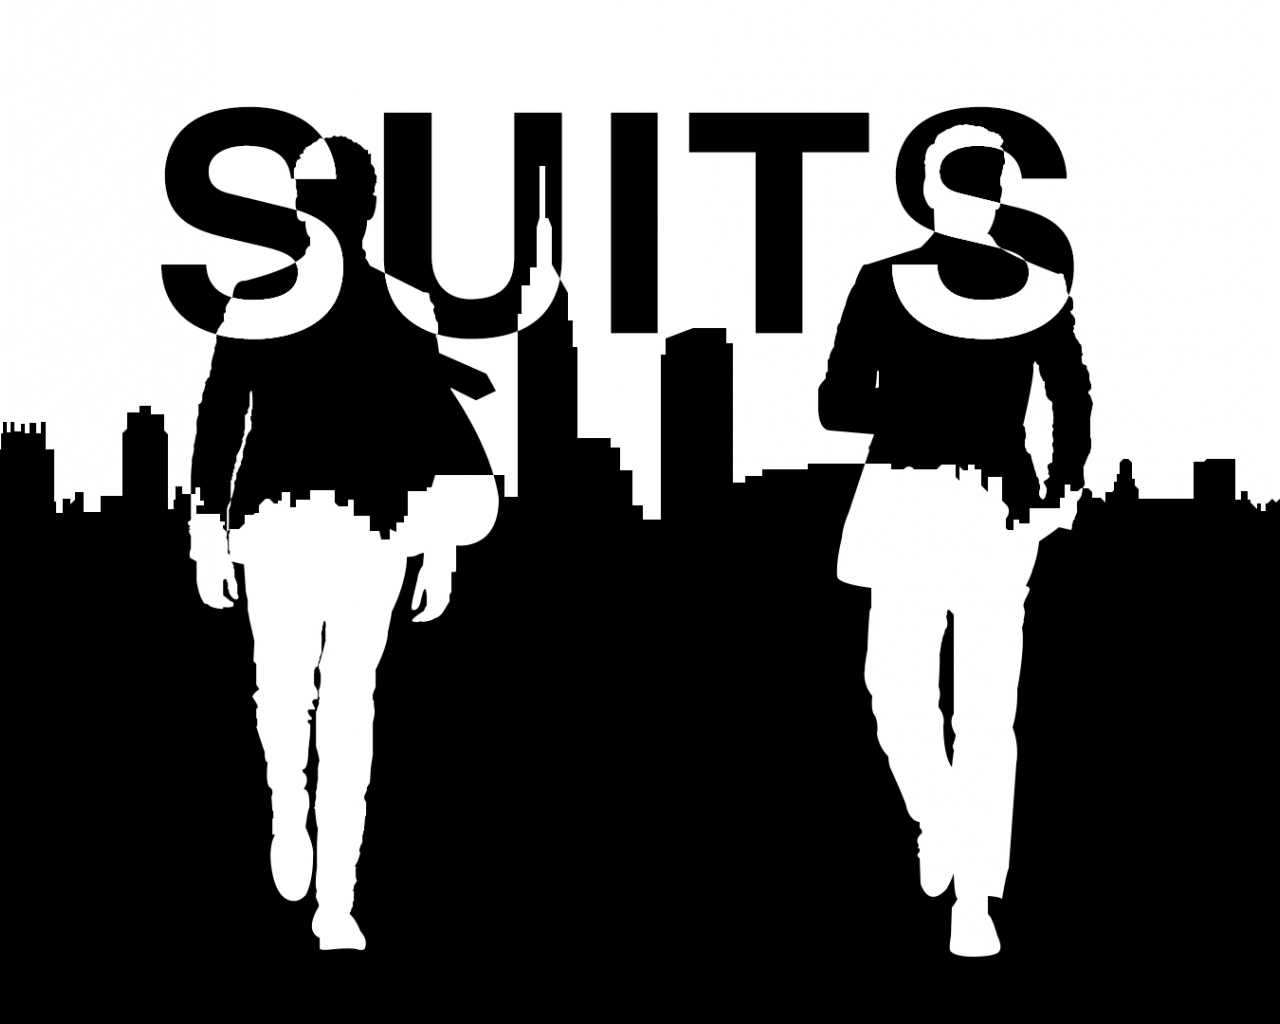 free download suits tv series wallpapers 1920x1080 for your desktop mobile tablet explore 43 suit wallpaper hd swimsuit wallpapers 1080p si swimsuit wallpaper downloads swimsuit wallpapers suits tv series wallpapers 1920x1080